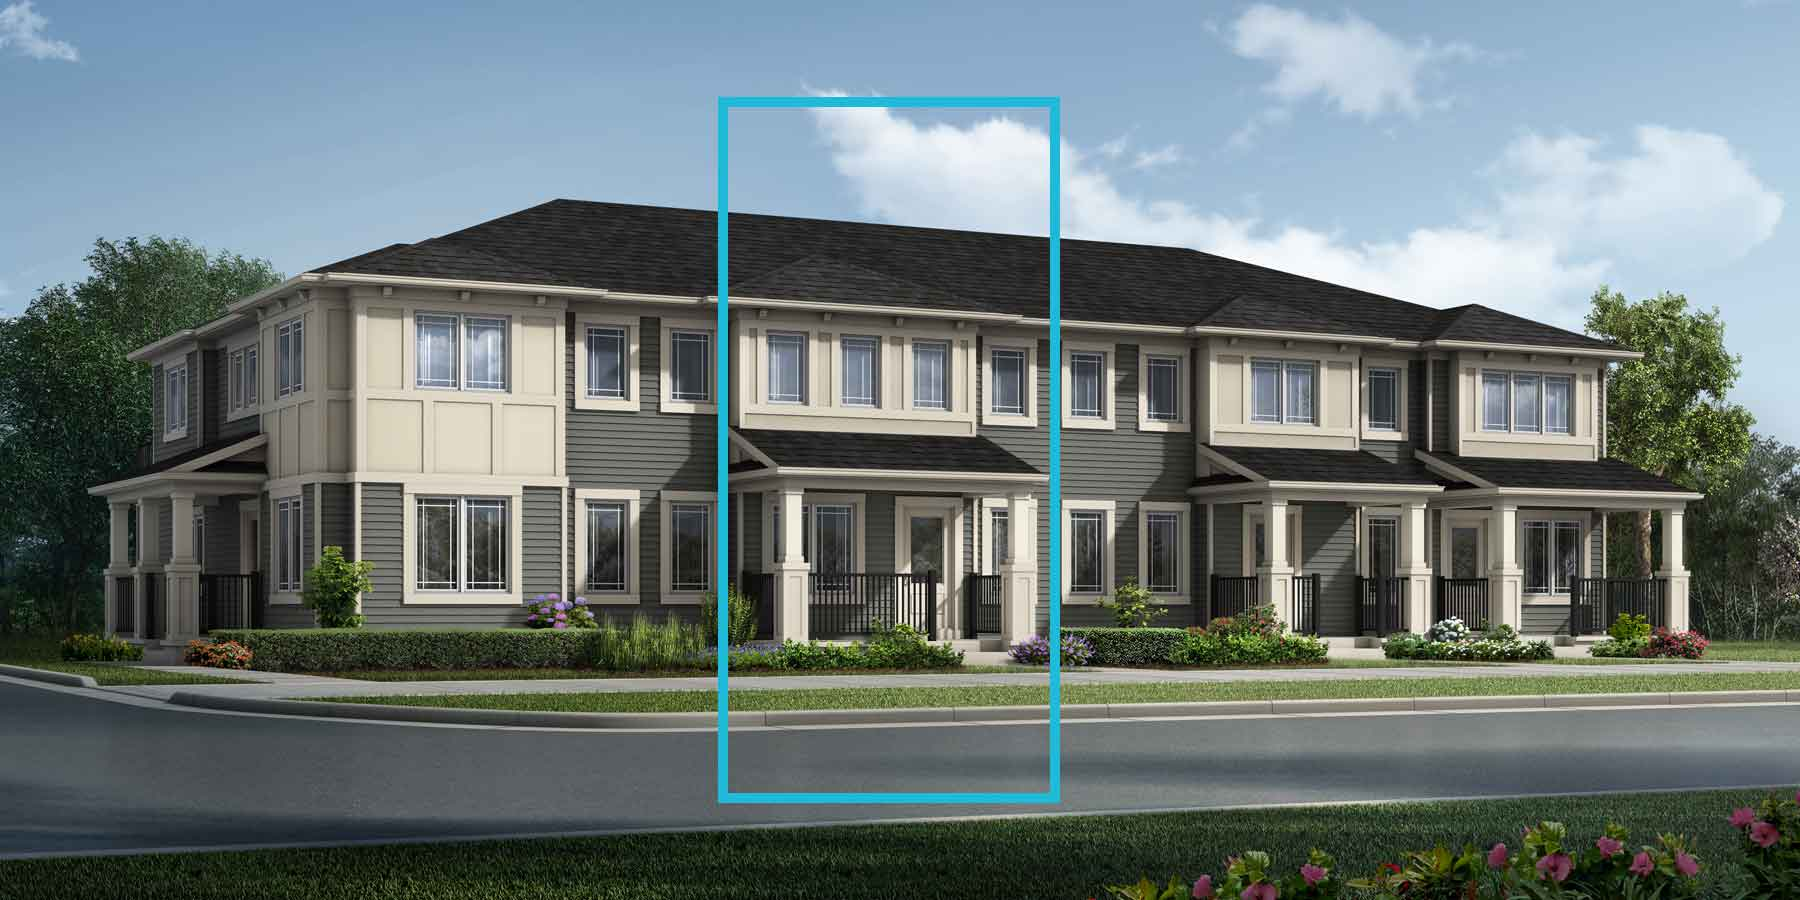 Brooke Plan TownHomes at Southwinds in Airdrie Alberta by Mattamy Homes